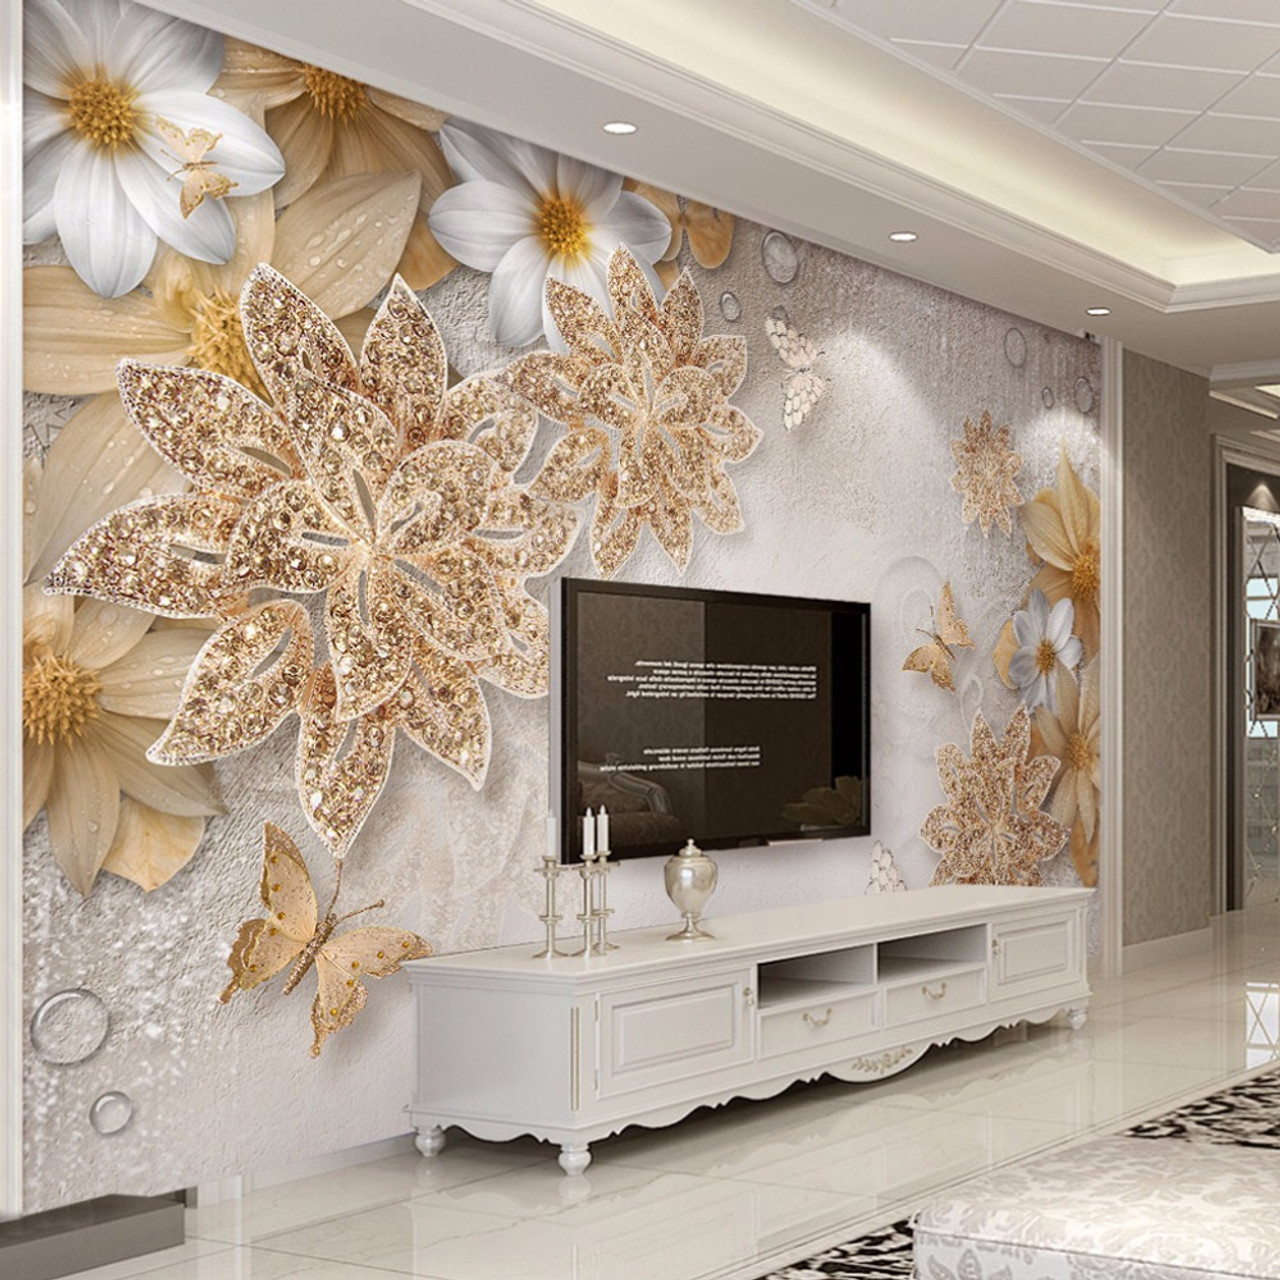 Custom Mural Wallpaper For Bedroom Walls 3D Luxury Gold